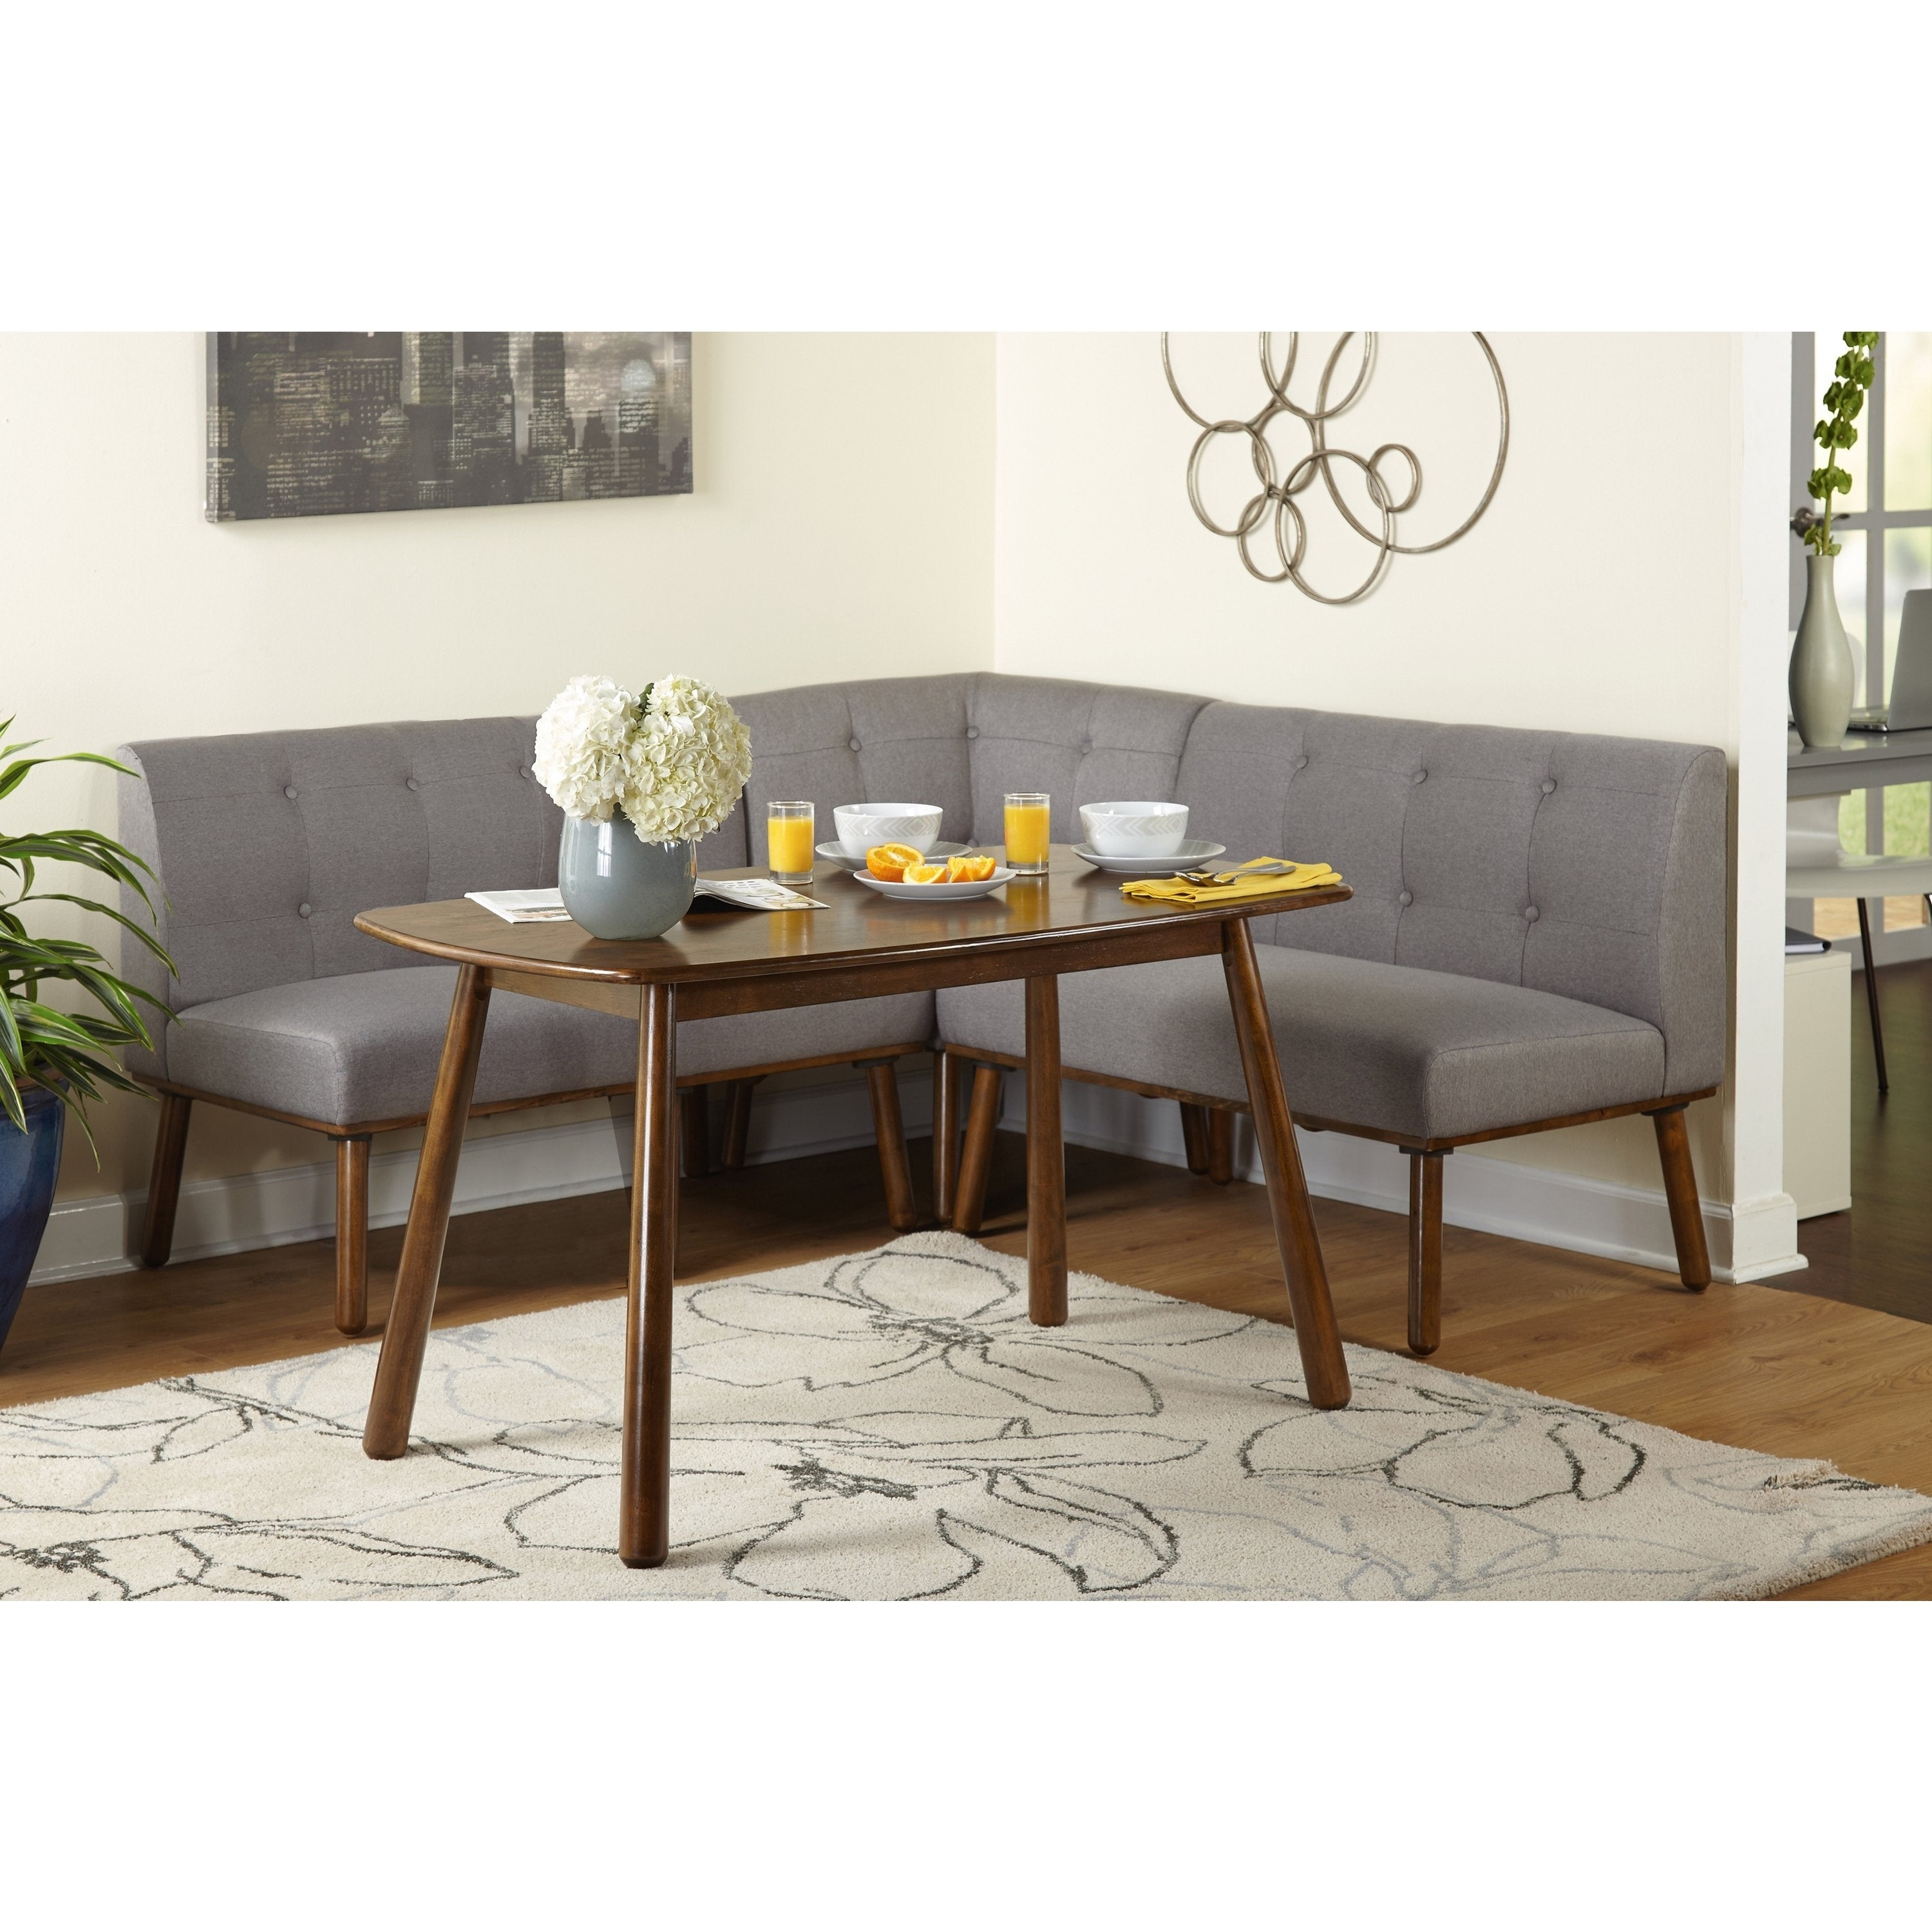 Buy 3 Piece Sets Kitchen & Dining Room Sets Online At Overstock In Well Liked Frida 3 Piece Dining Table Sets (View 6 of 25)